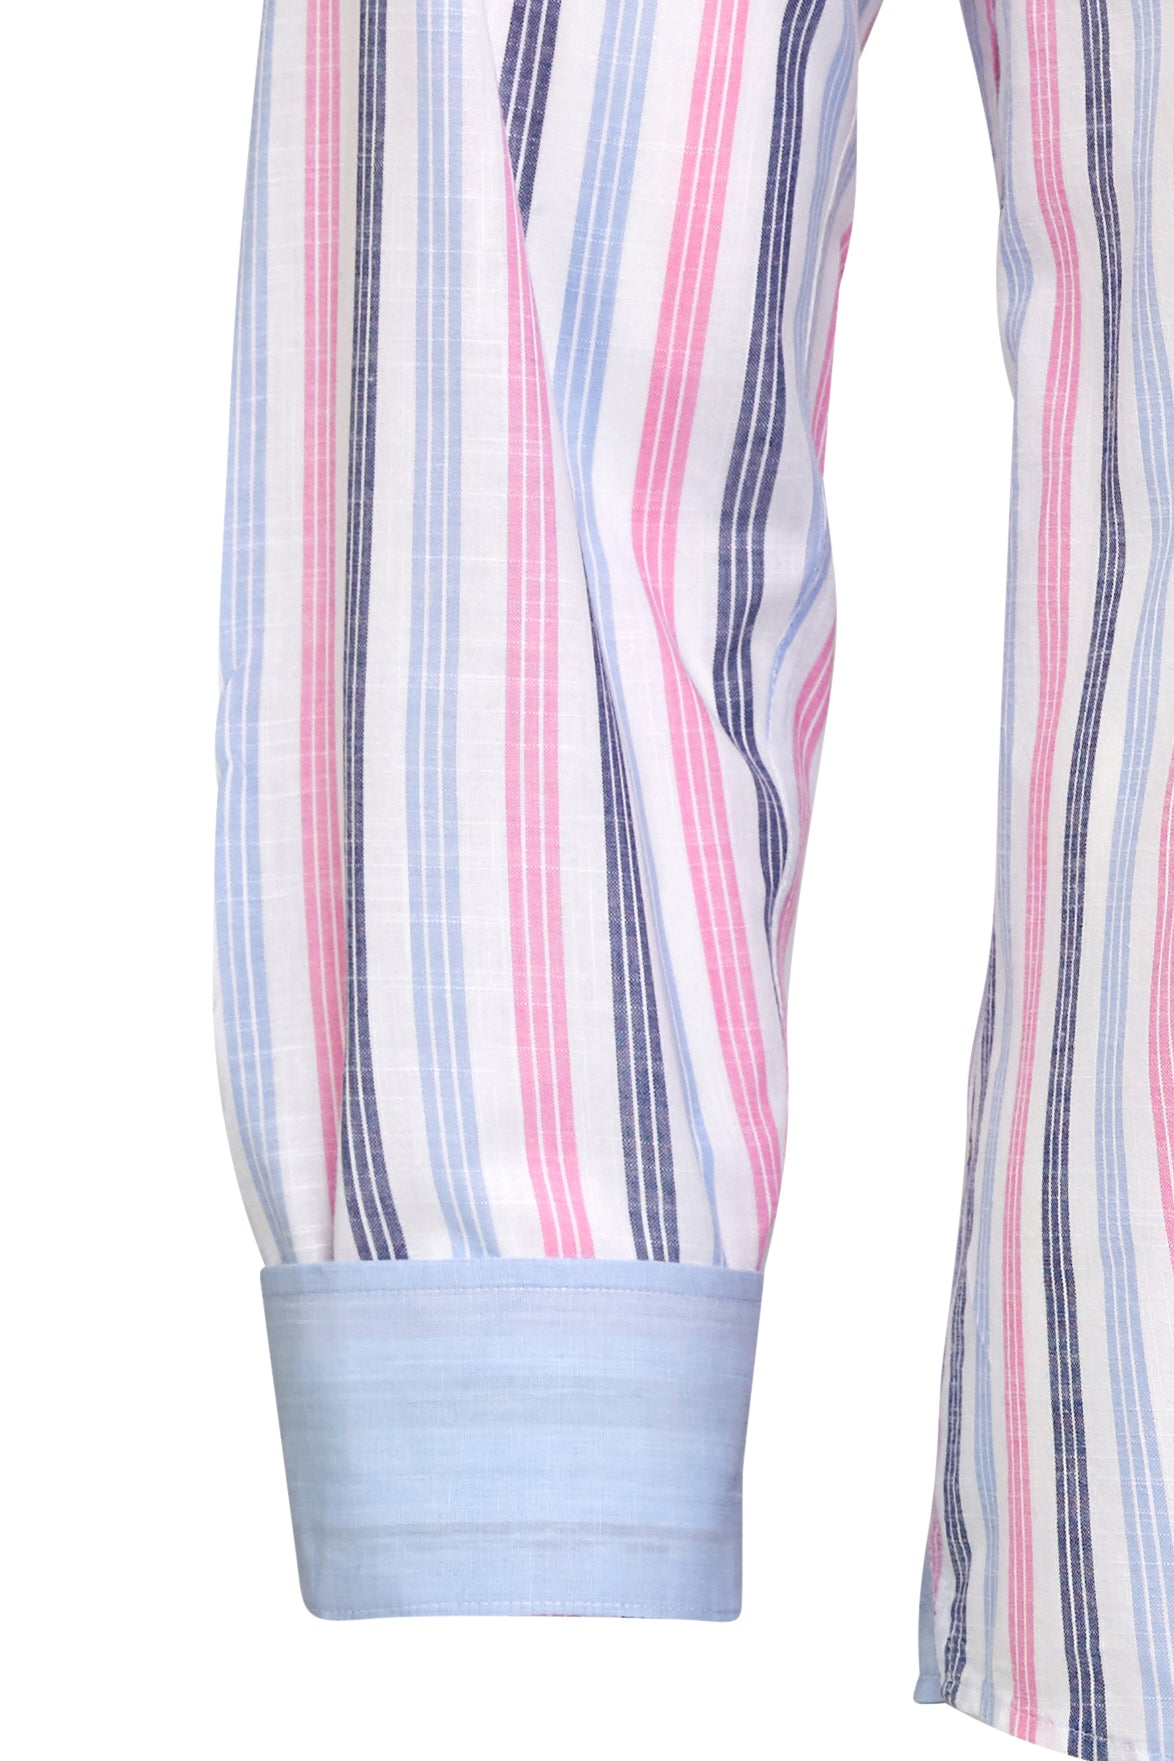 PINK n BLUE STRIPE